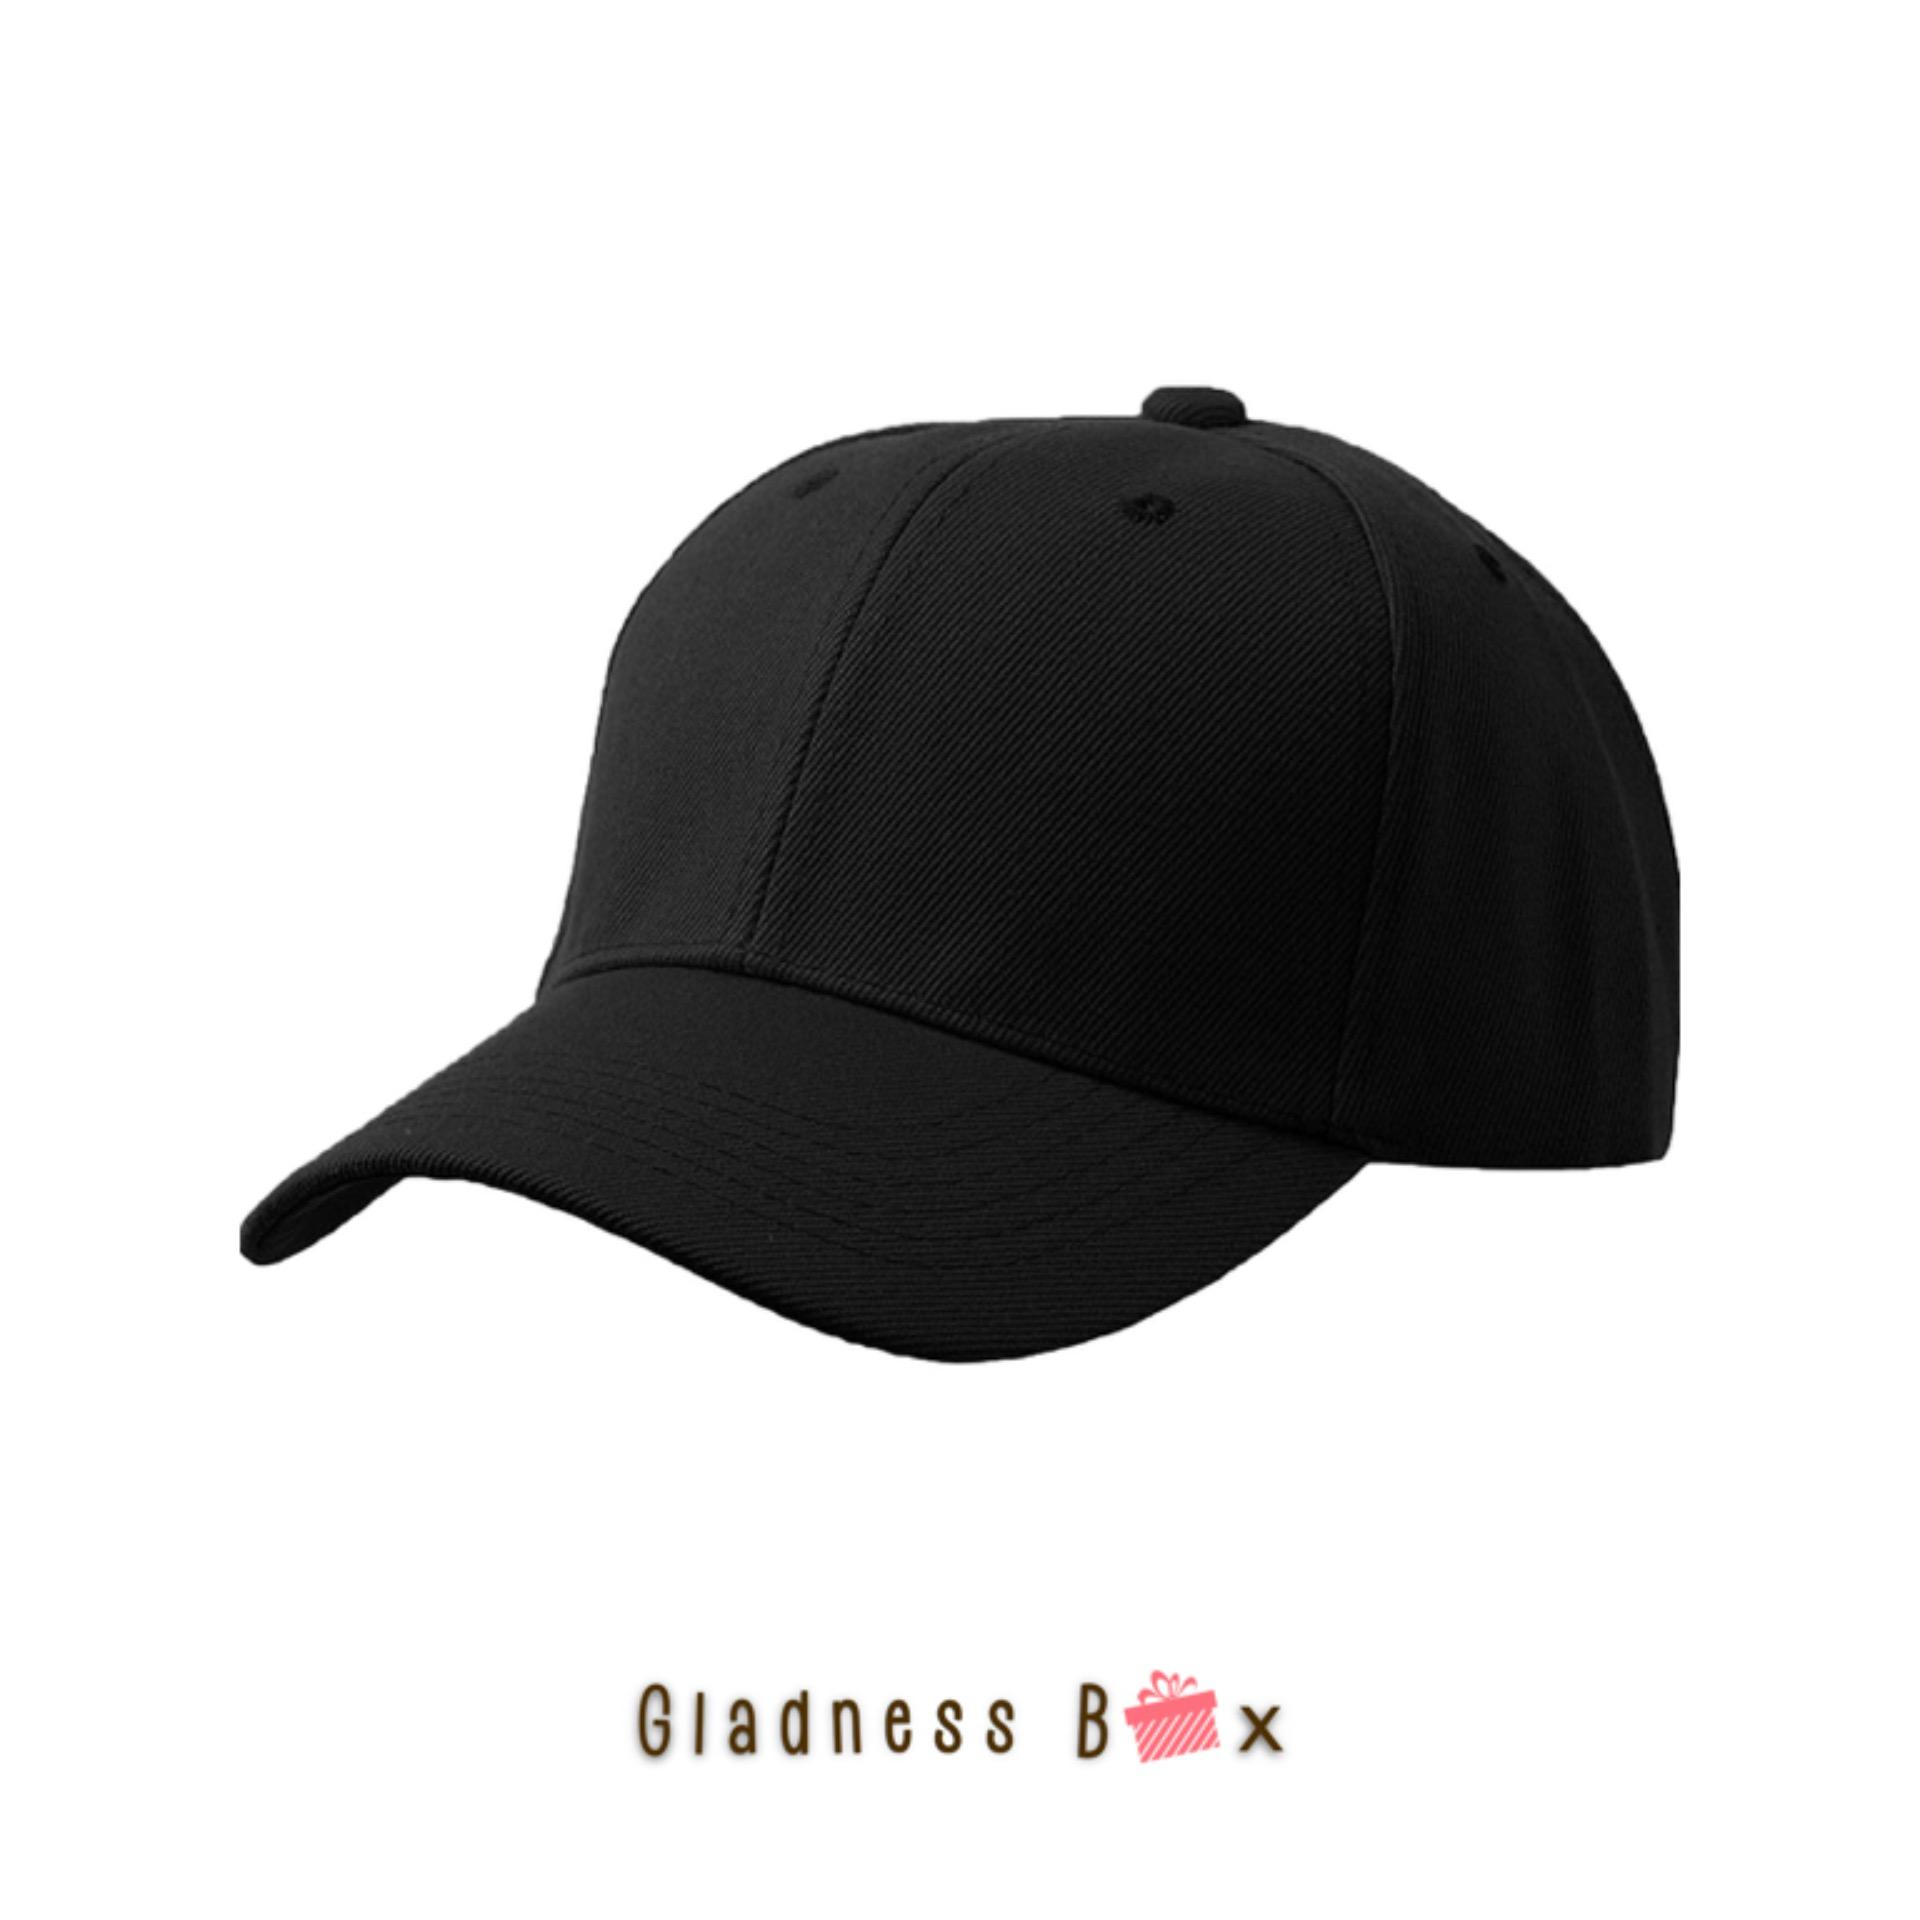 Gladness Box High Quality Plain Baseball Cap for Men Women Unisex c59a6136bb6f